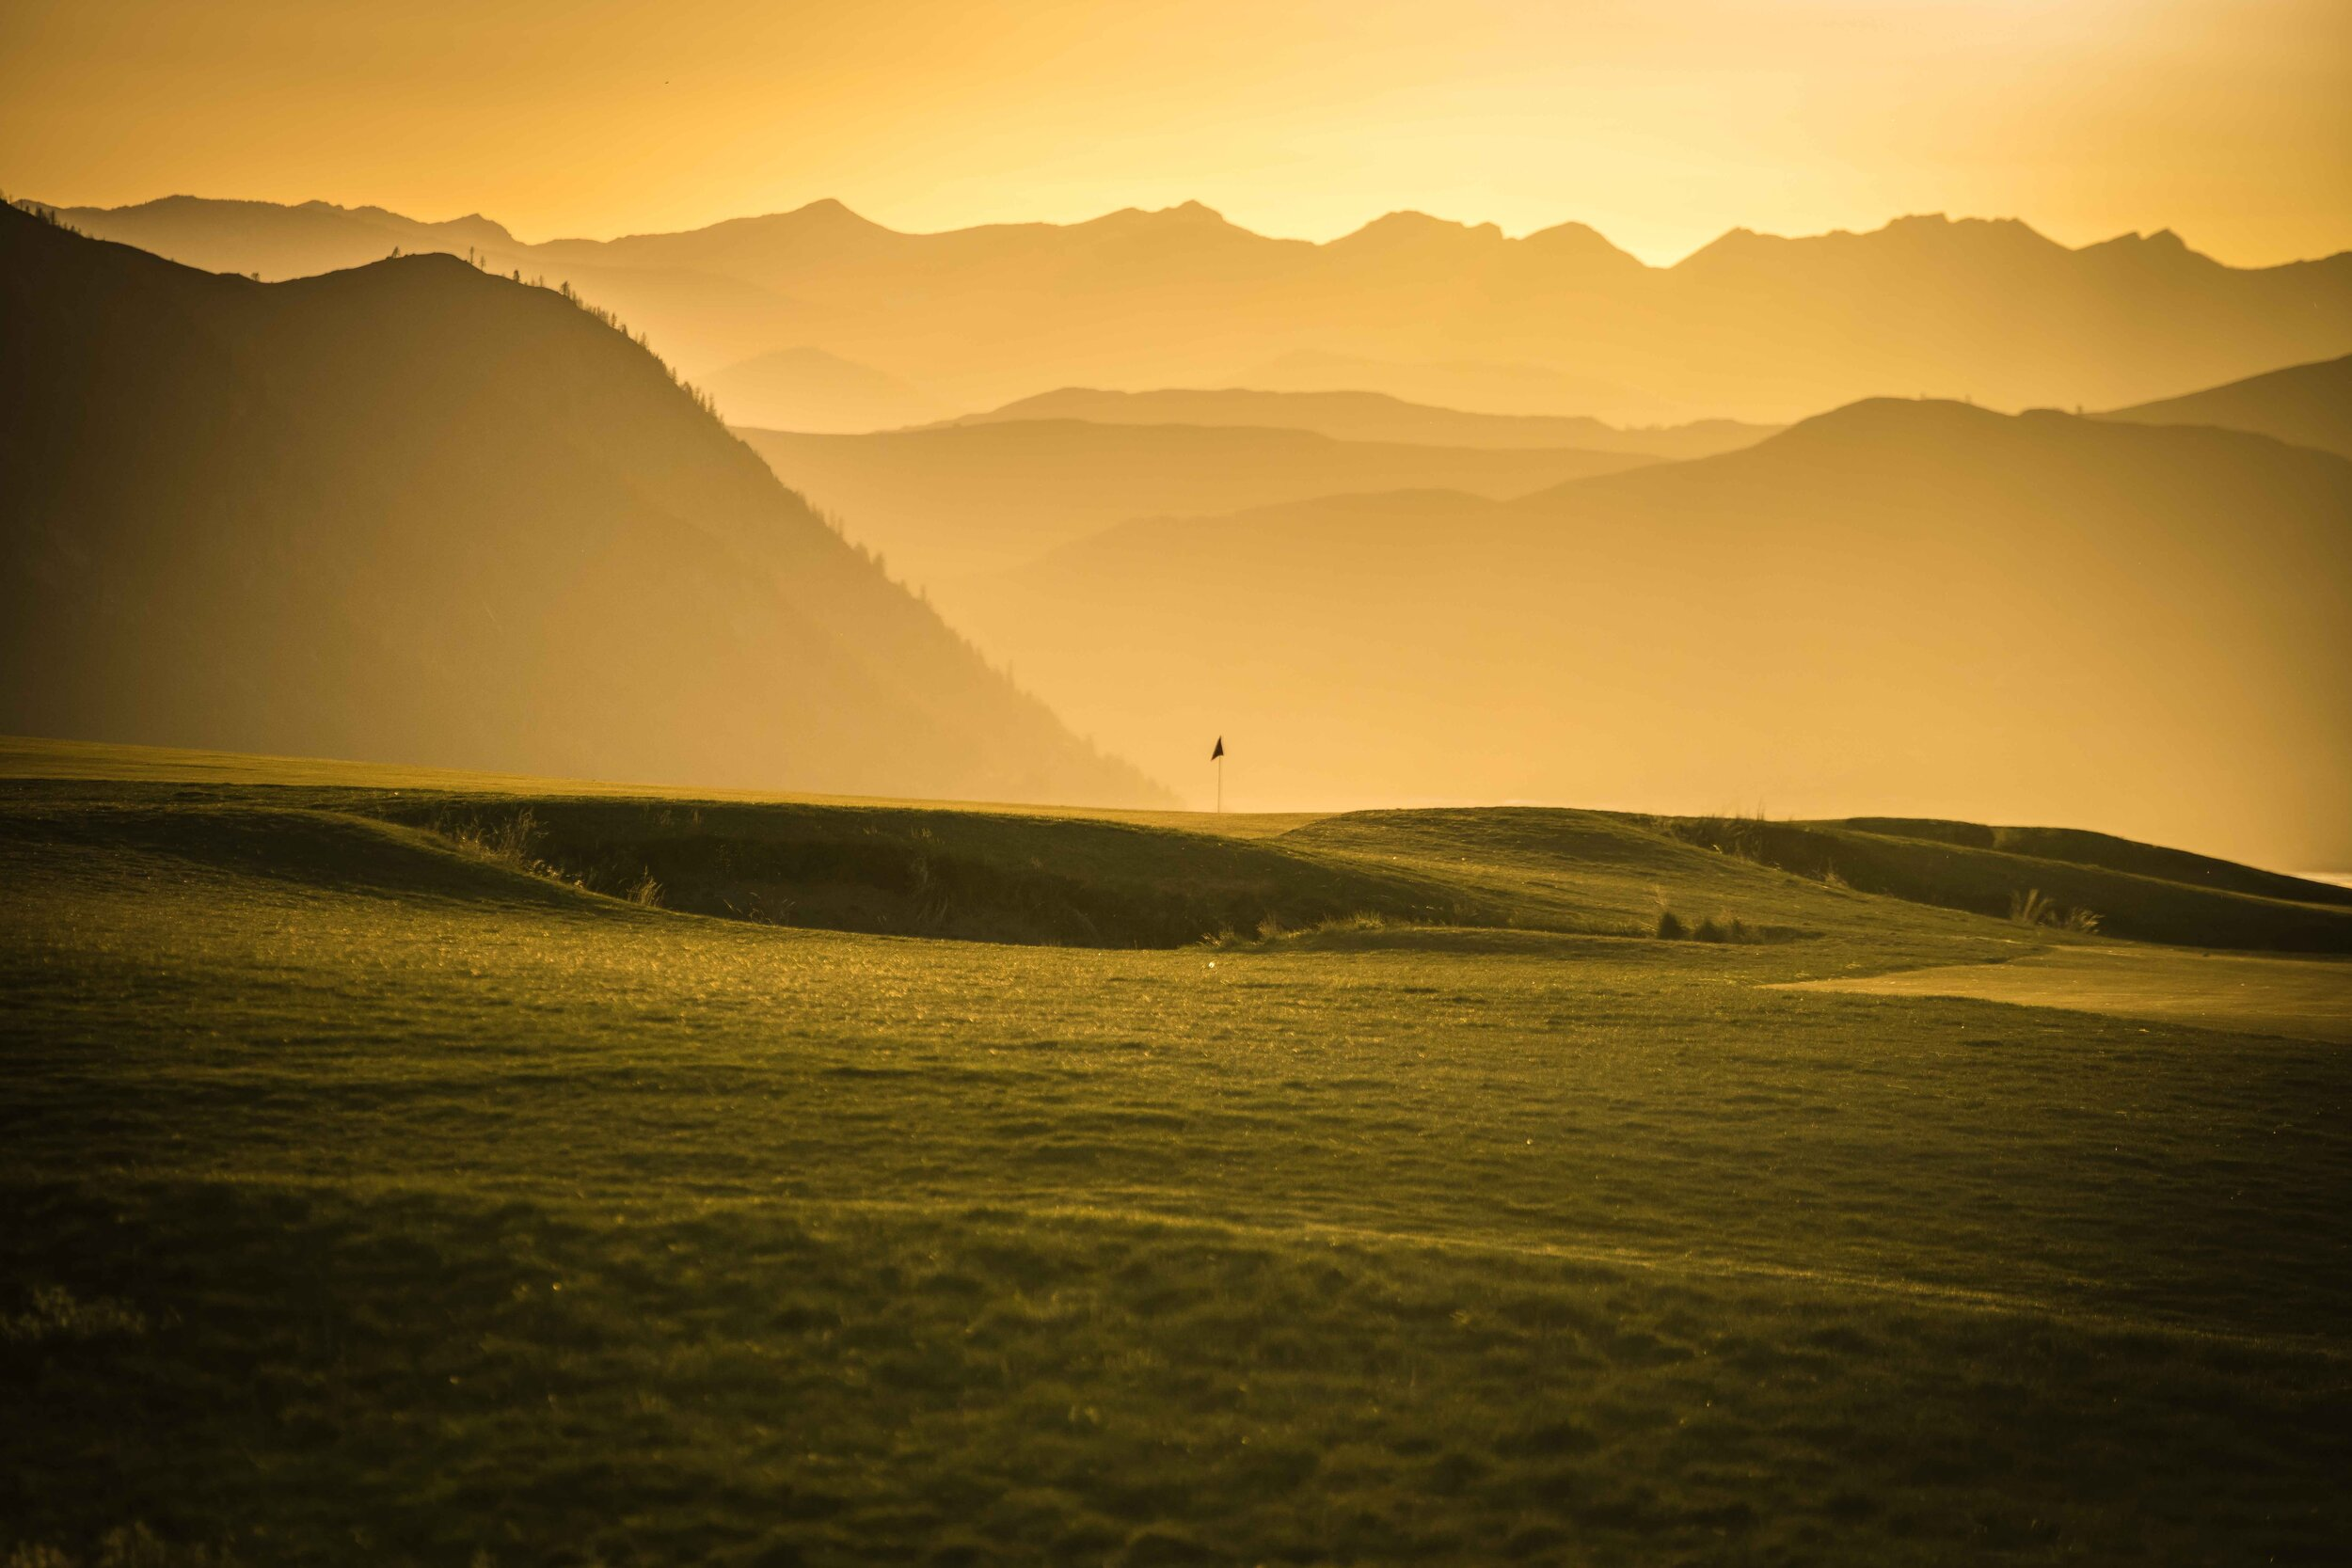 Sunset over the 8th hole at Gamble Sands